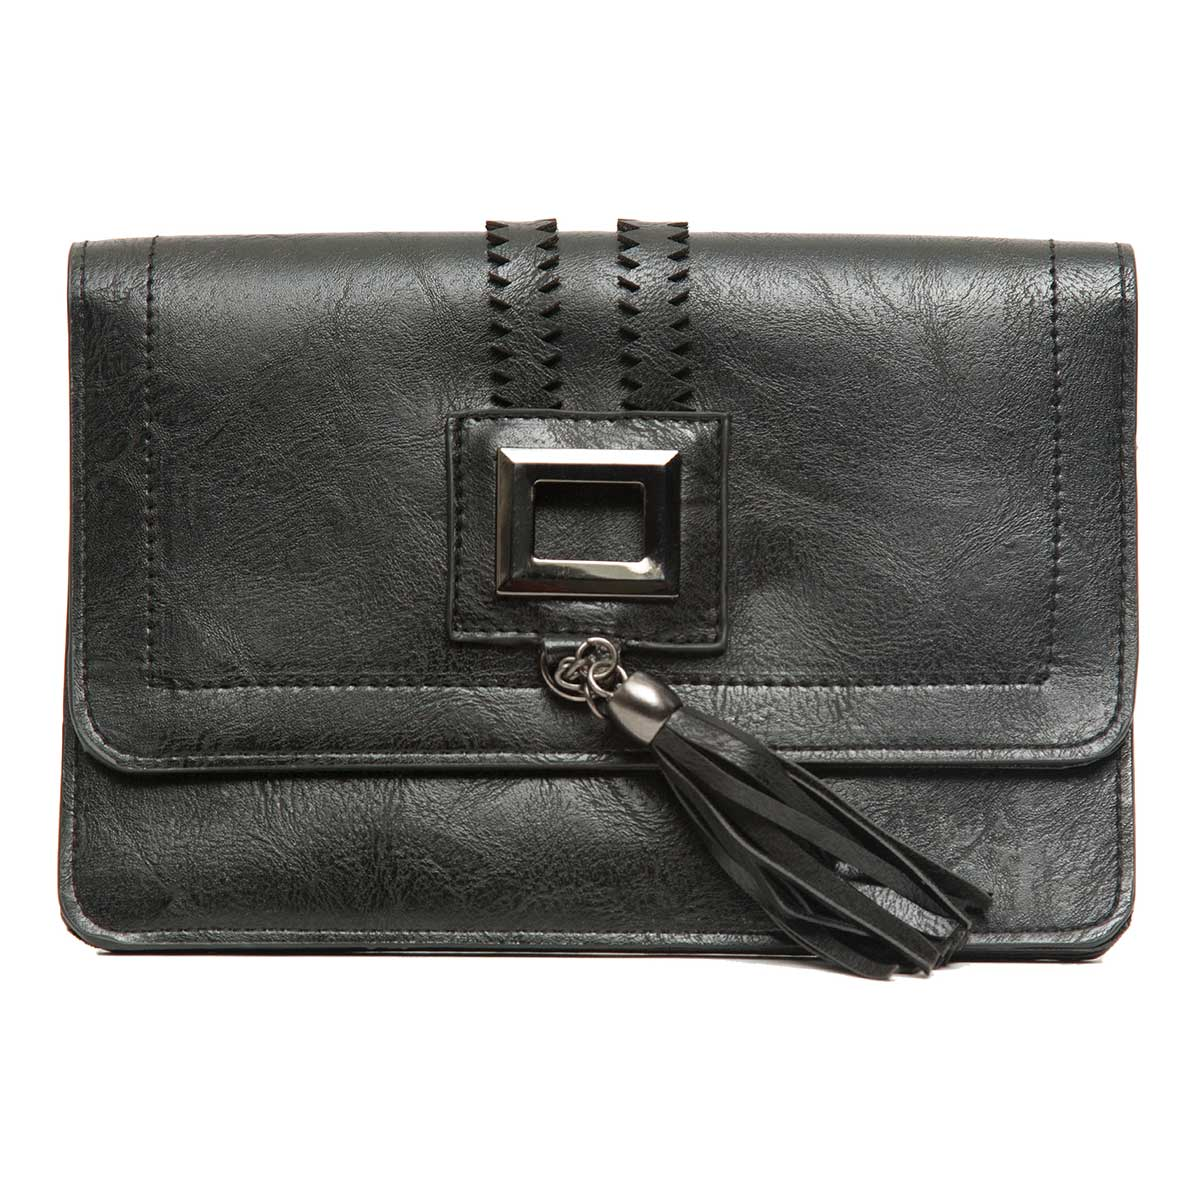 Cross-body Purse with Square Metal Cutout and Tassel with Strap